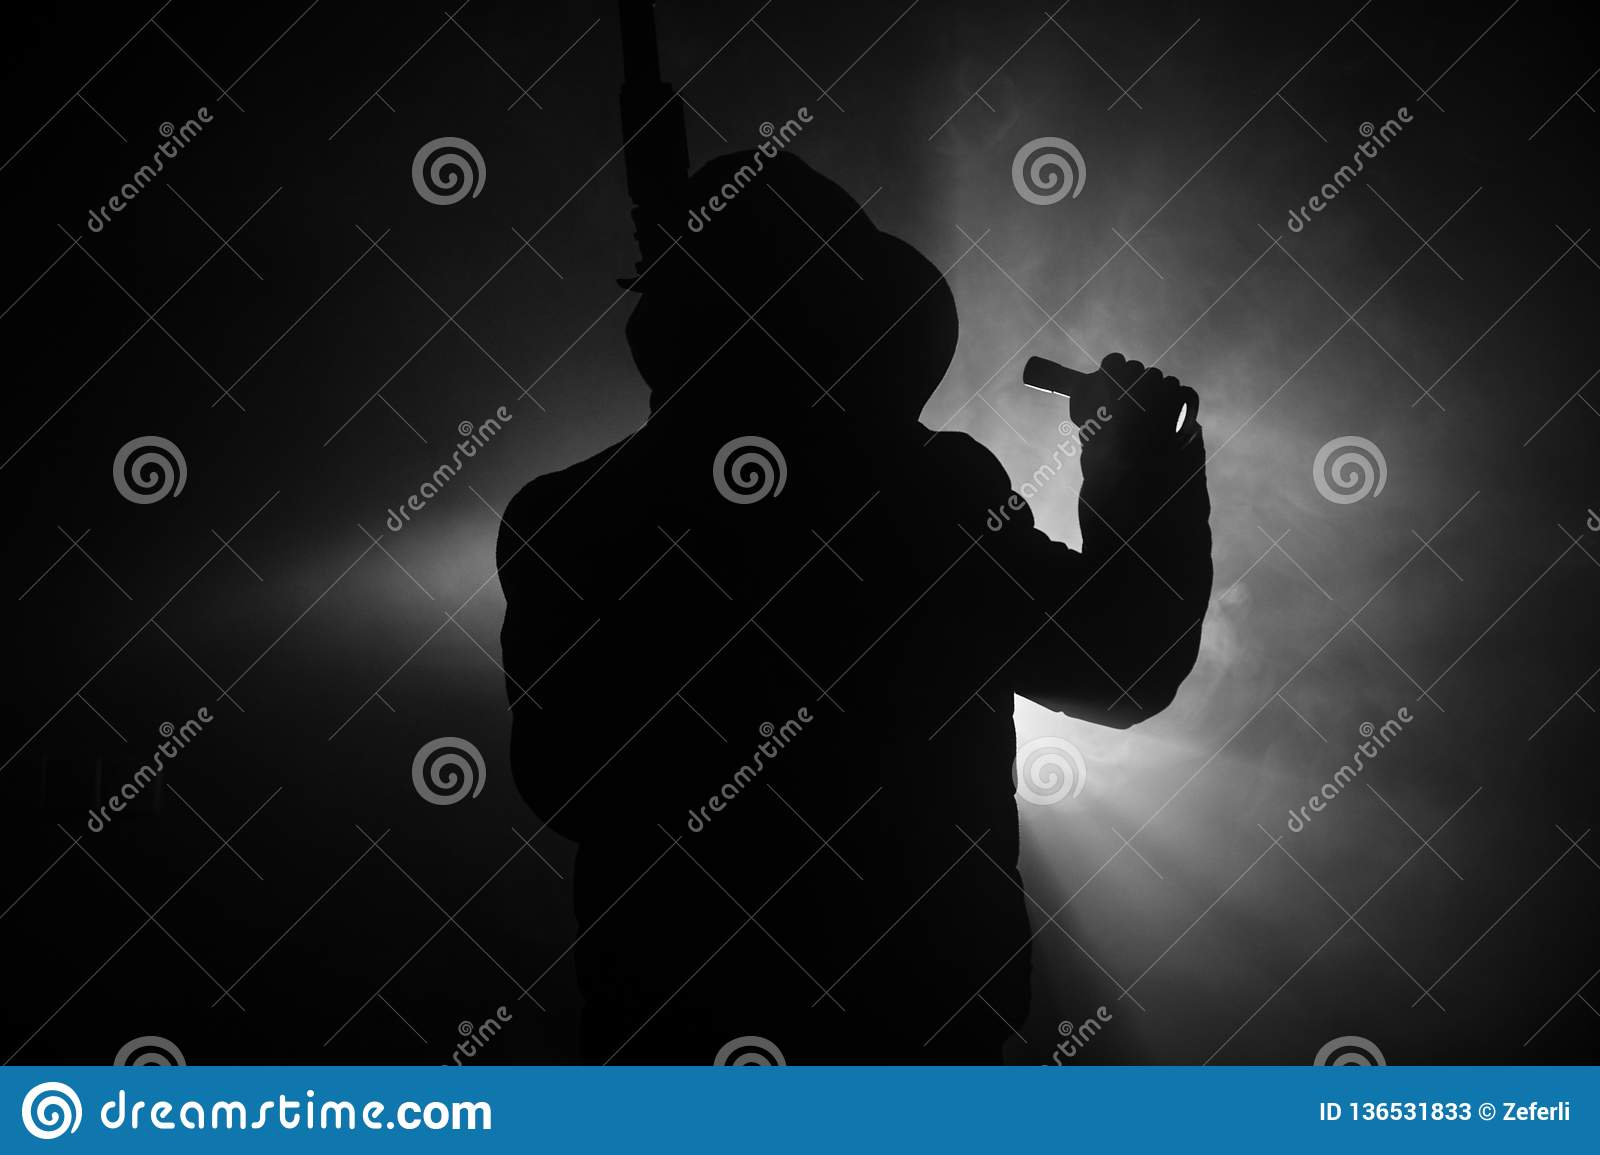 Silhouette of man with assault rifle ready to attack on dark toned foggy background or dangerous bandit in black wearing balaclava